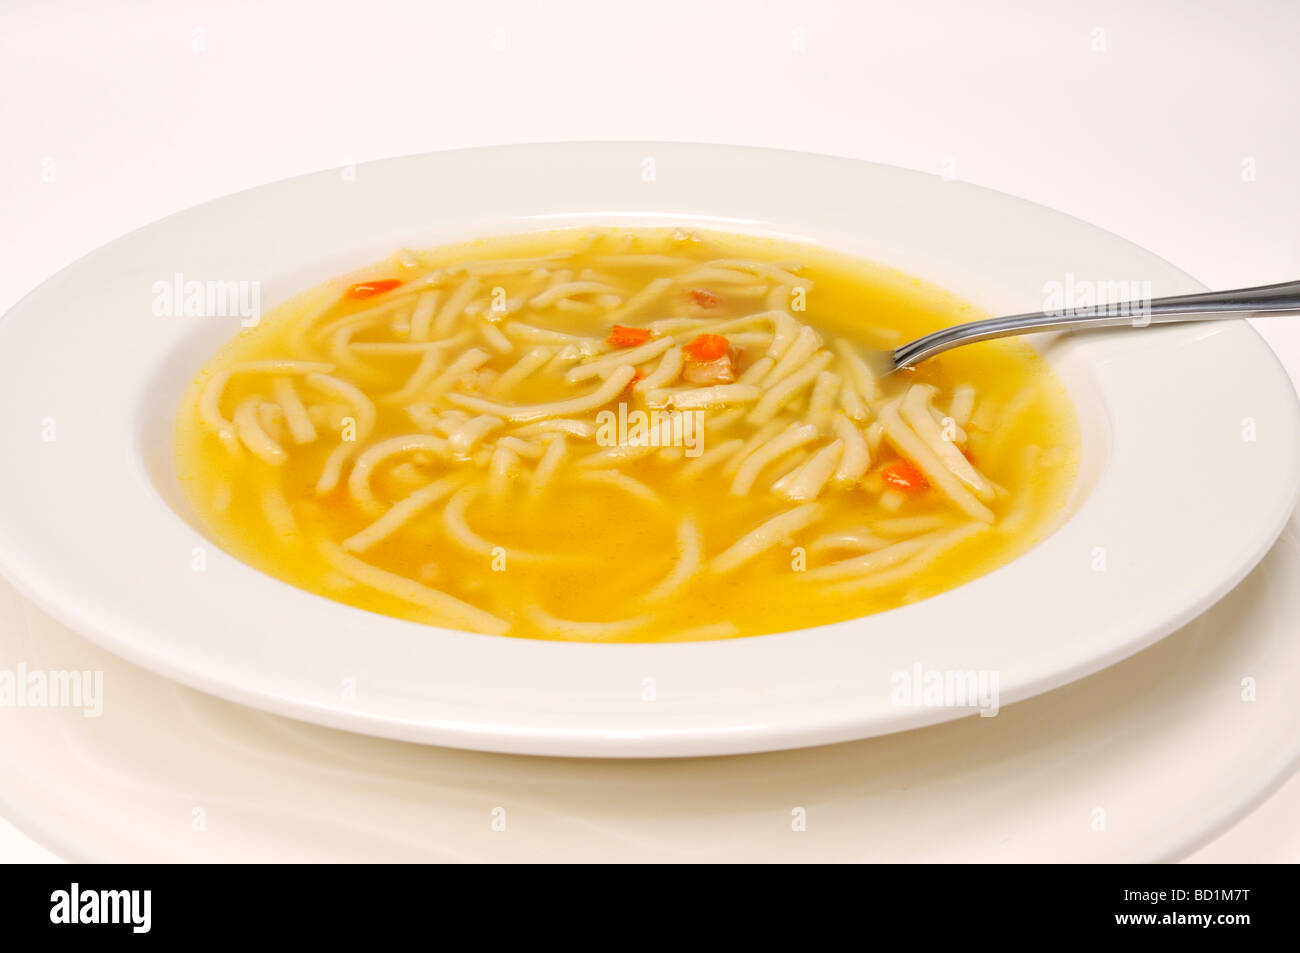 Bowl of chicken noodle soup with spoon on white background. - Stock Image